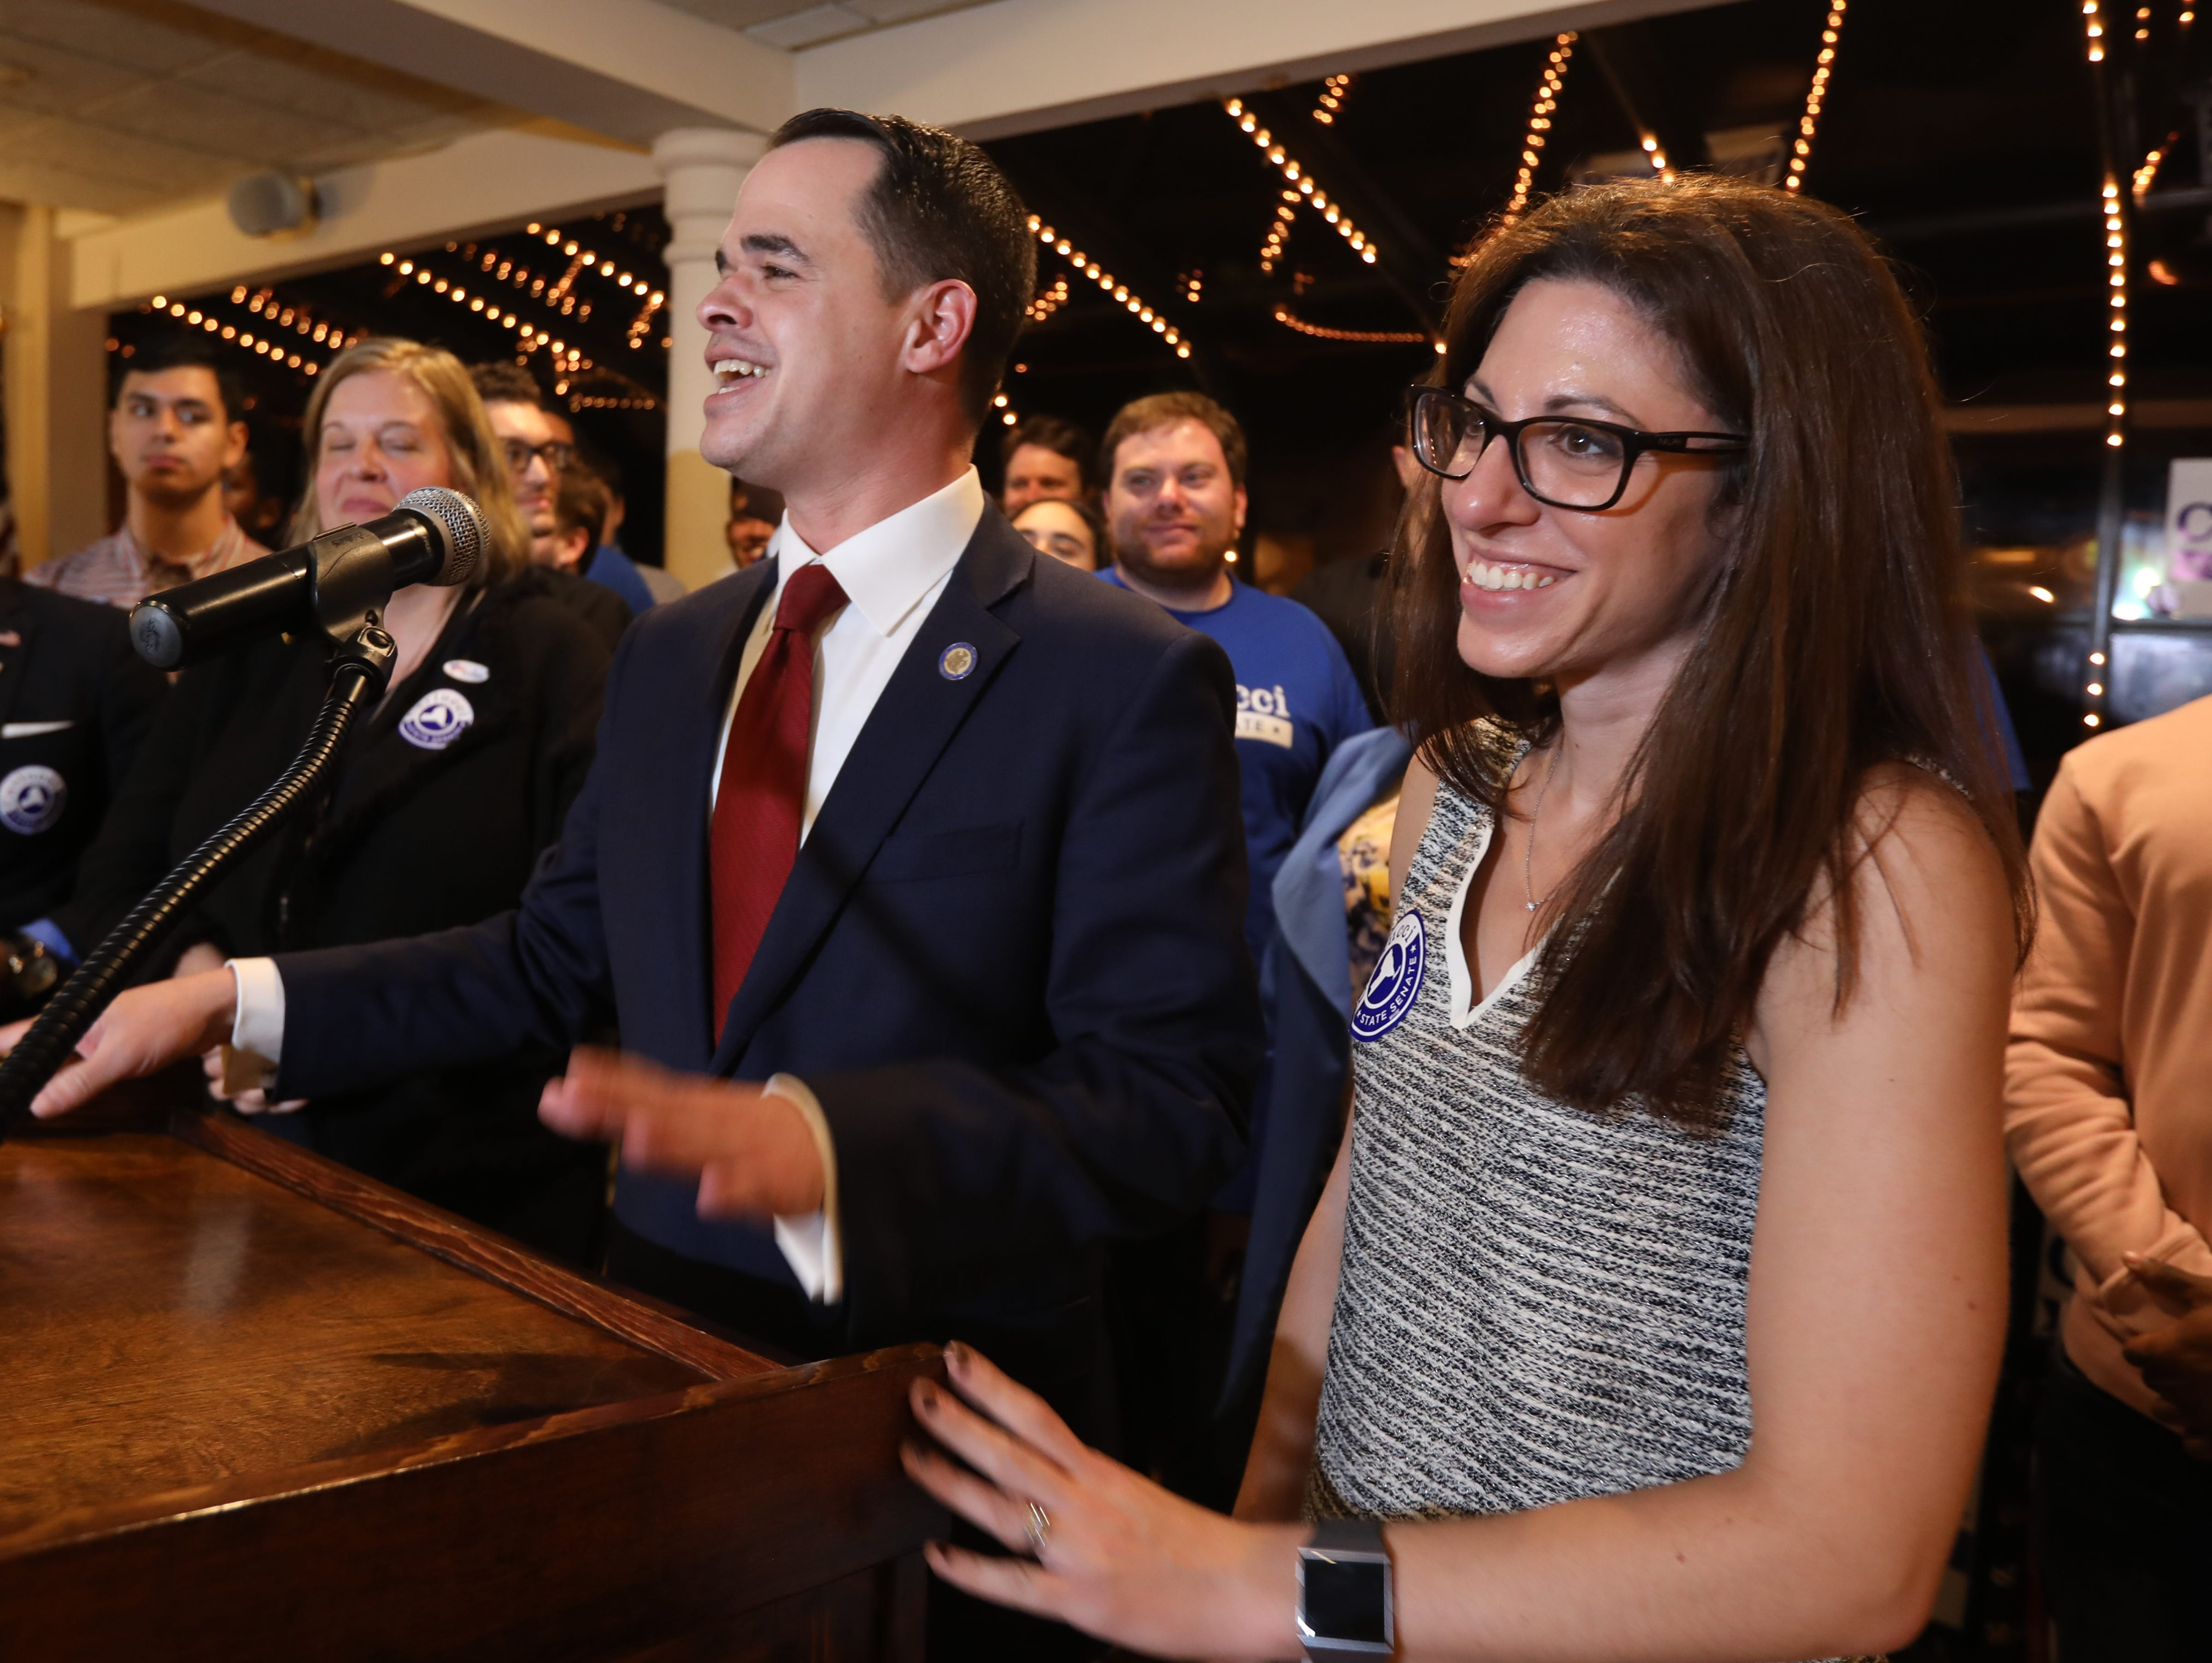 State Sen. David Carlucci, with his wife Lauren, speaks after winning re-election at Casa Mia in Blauvelt Nov. 6, 2018.